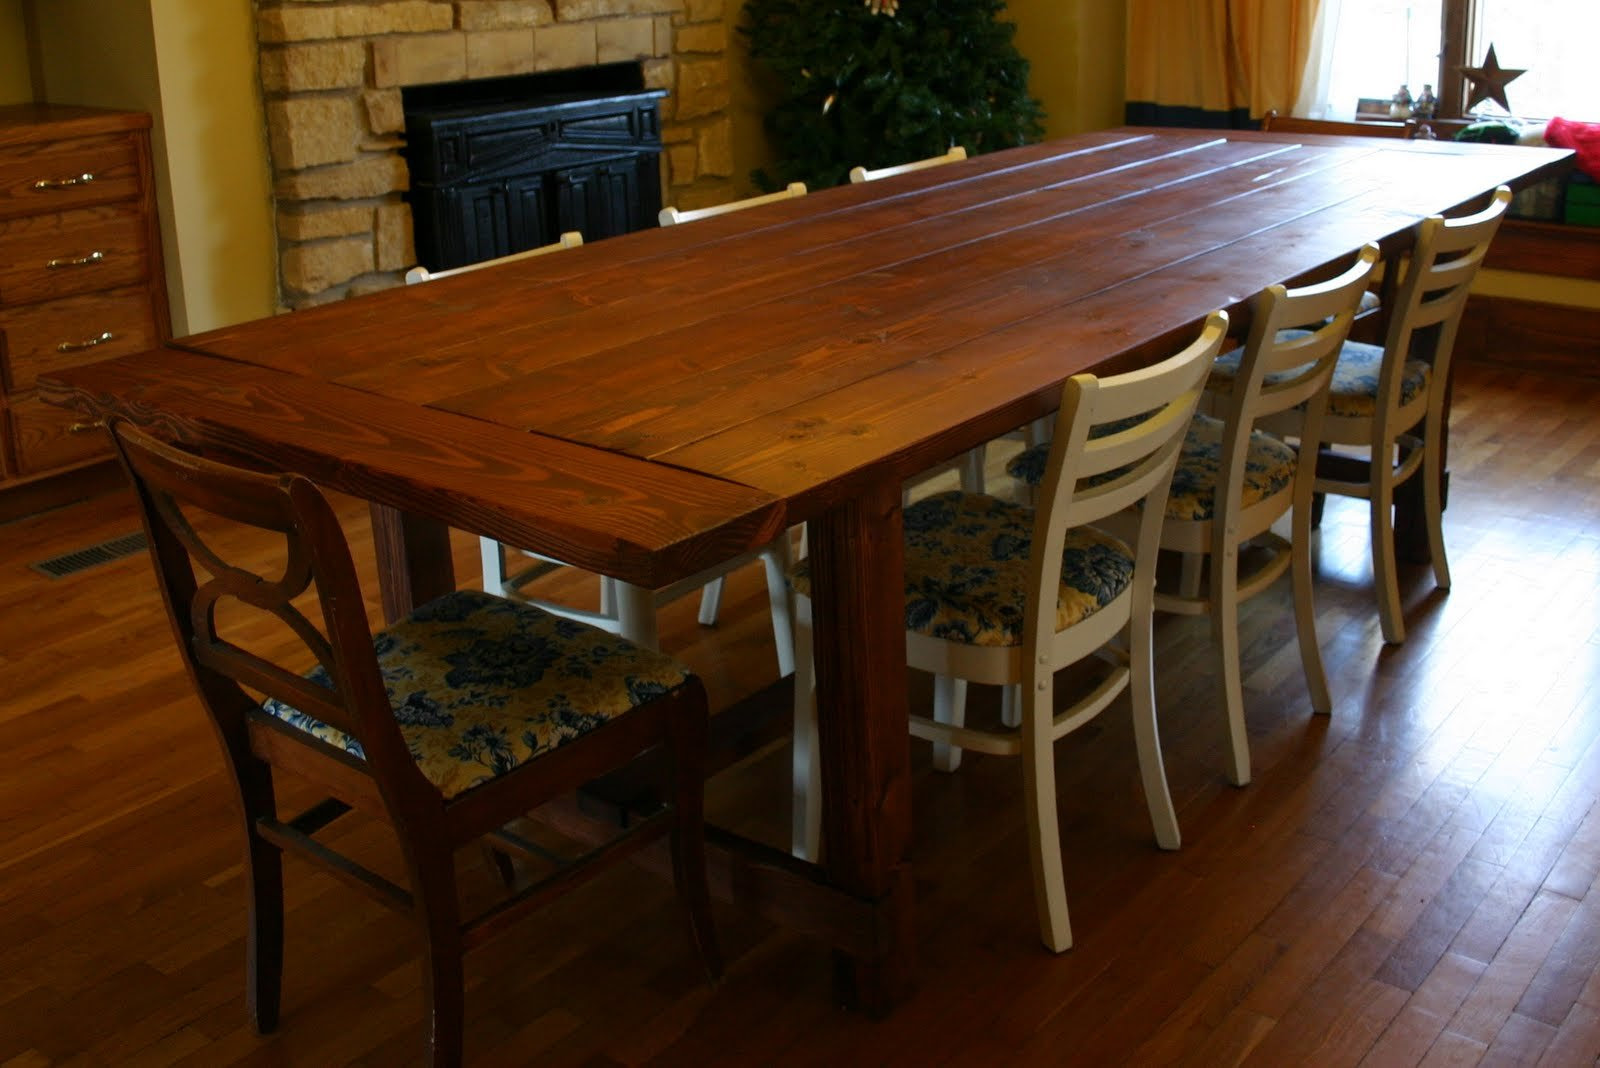 Free Dining Table Plans Large And Beautiful Photos Photo To Select Free Dining Table Plans Design Your Home